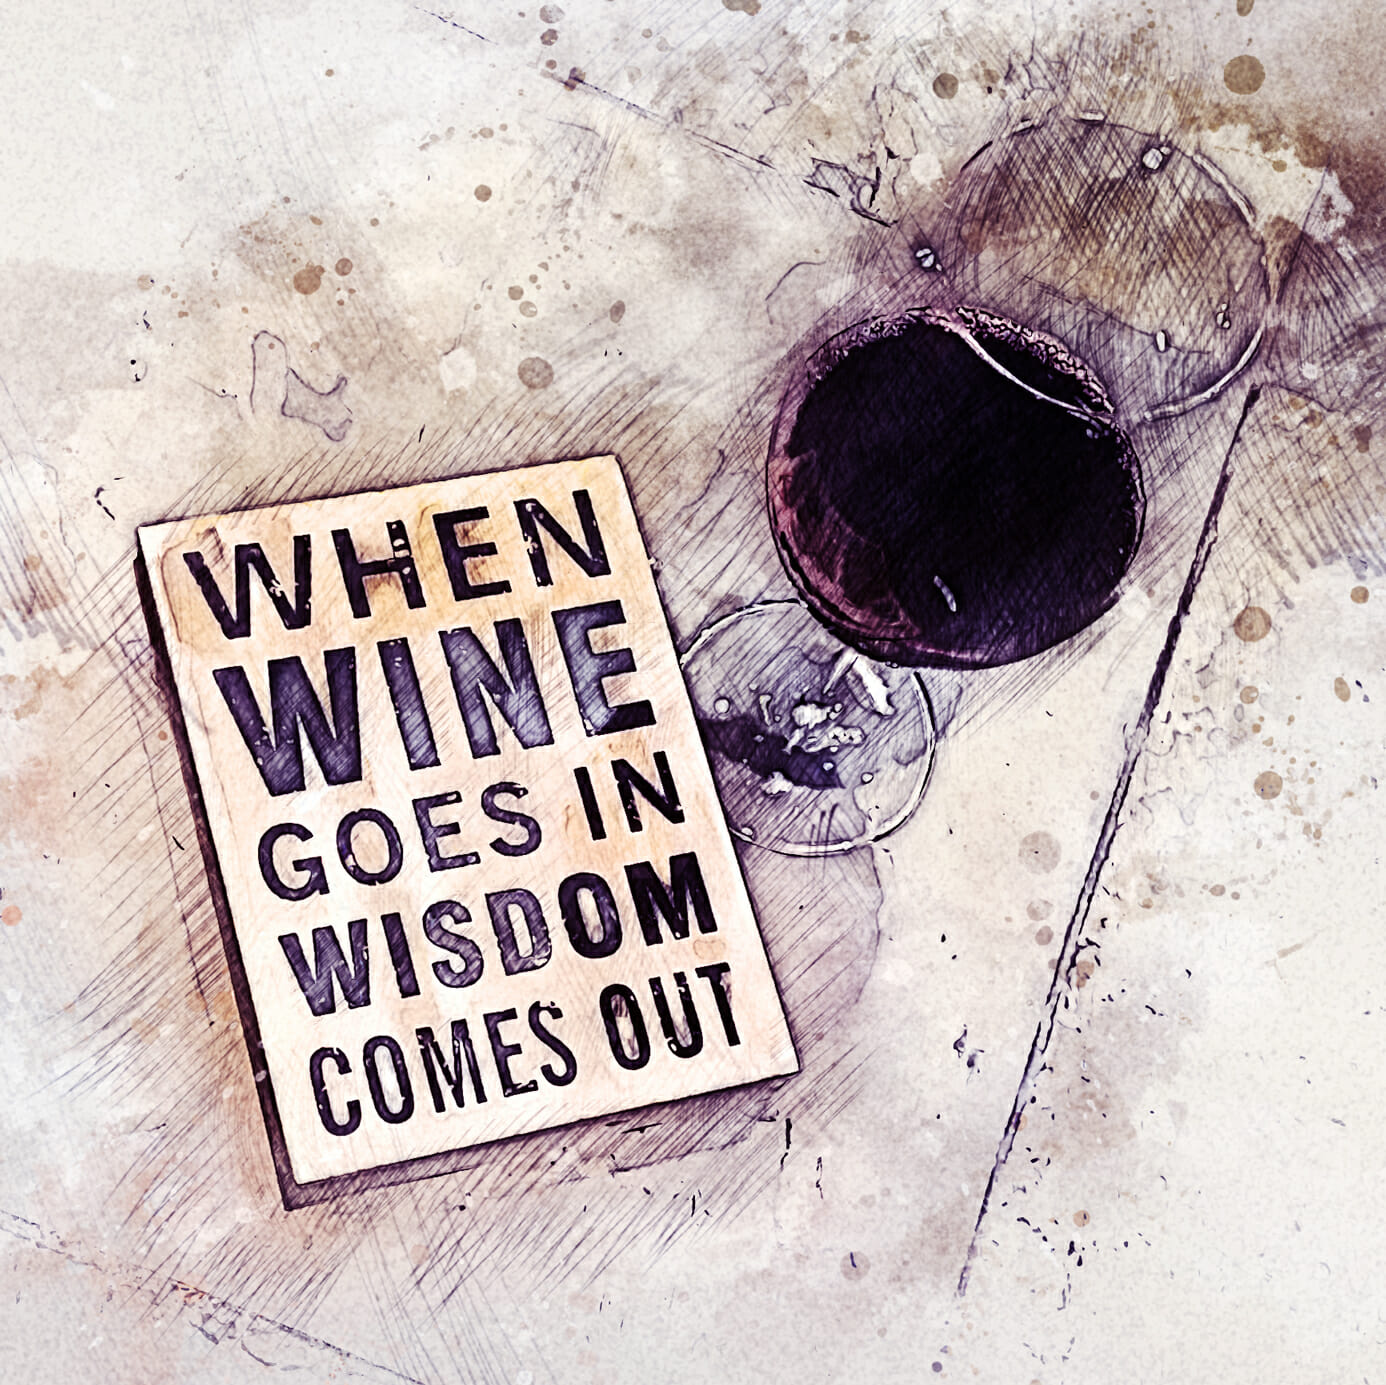 When Wine goes in Wisdom comes out. Event